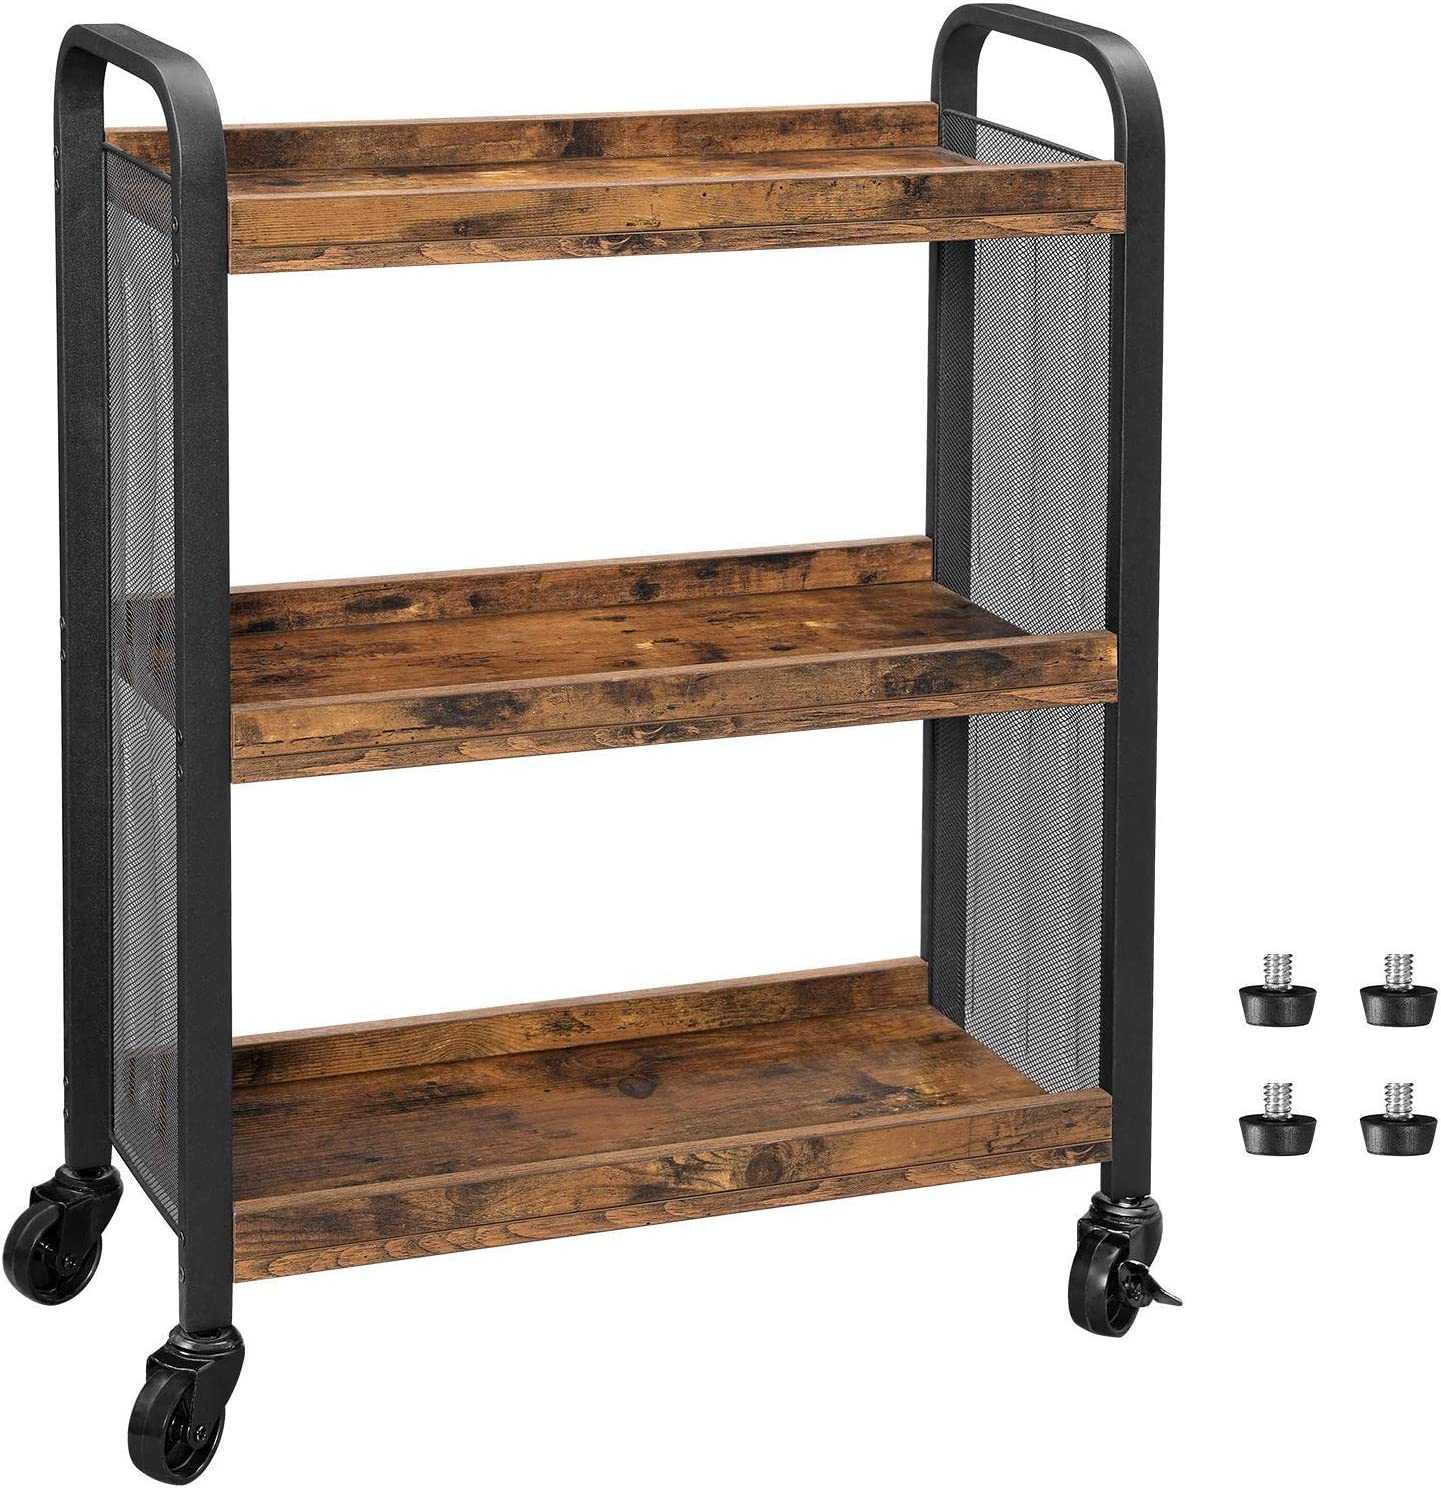 VASAGLE DAINTREE Serving Cart, Slim Kitchen Cart for Narrow Spaces, Rolling Storage Cart and Organizer Utility Cart with Casters Wheels, Easy Assembly, for Kitchen, Bathroom, Rustic Brown ULRC66BX